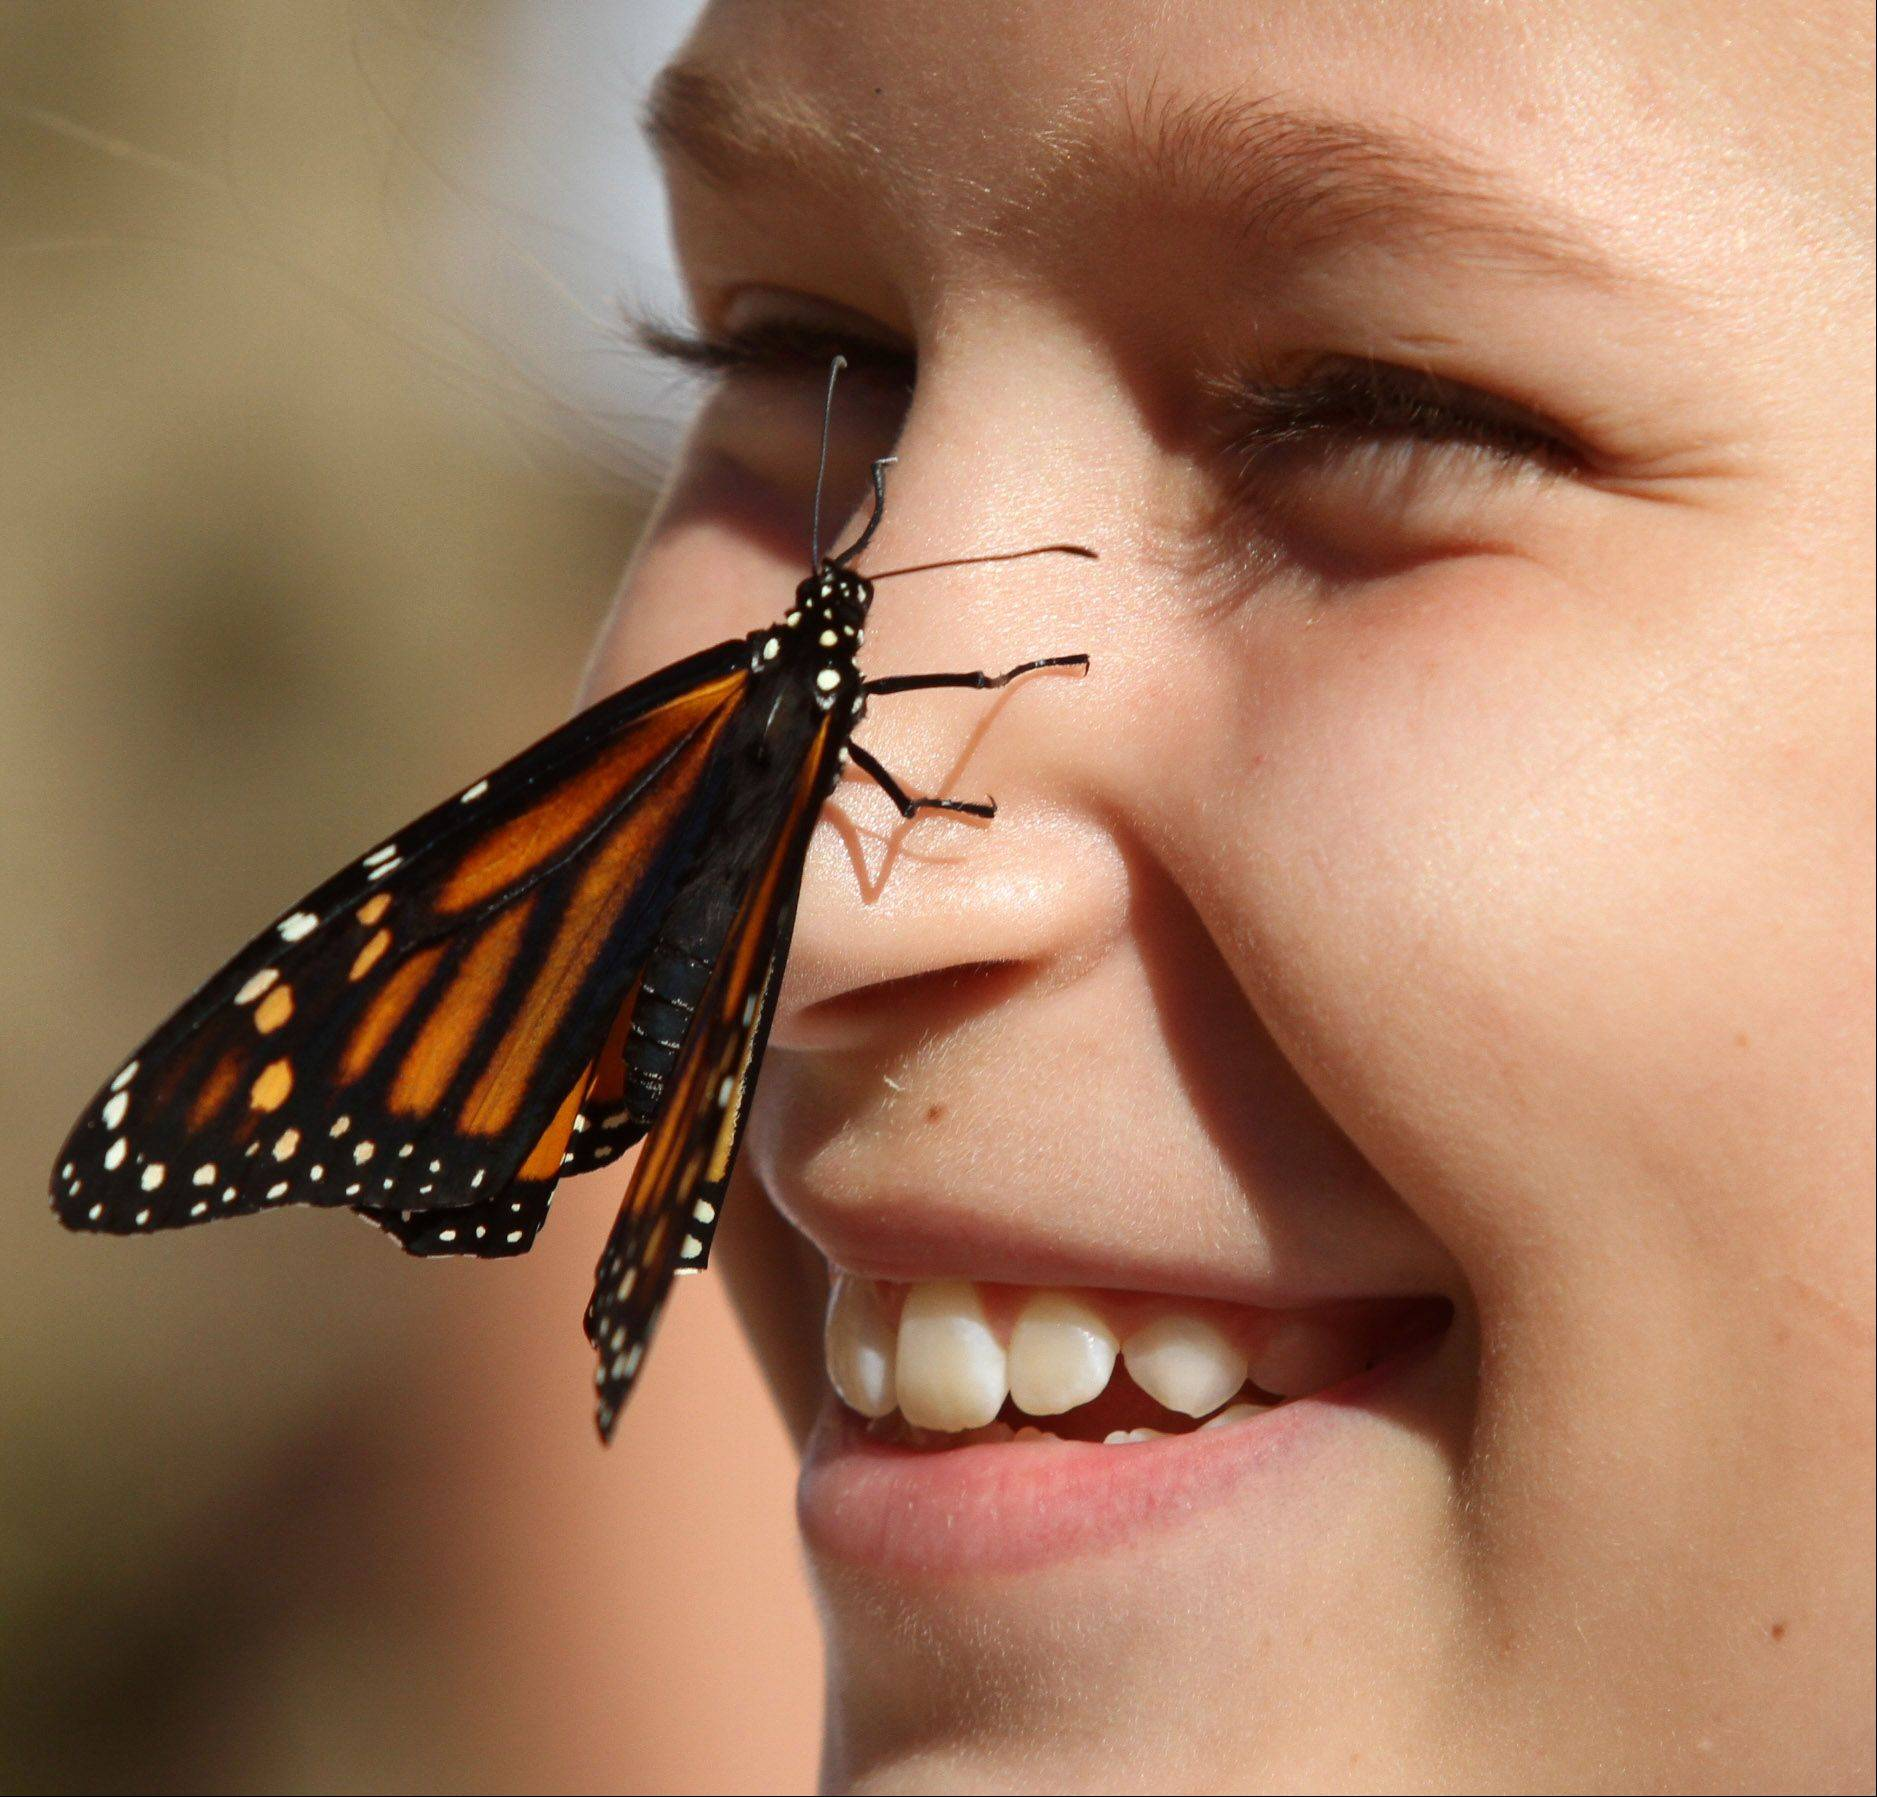 Seventh-grader Mackenzie Kamysz has a monarch butterfly released from her noise outside during Nancy Gottung's science class at St. James School in Arlington Heights on Tuesday, September 11.